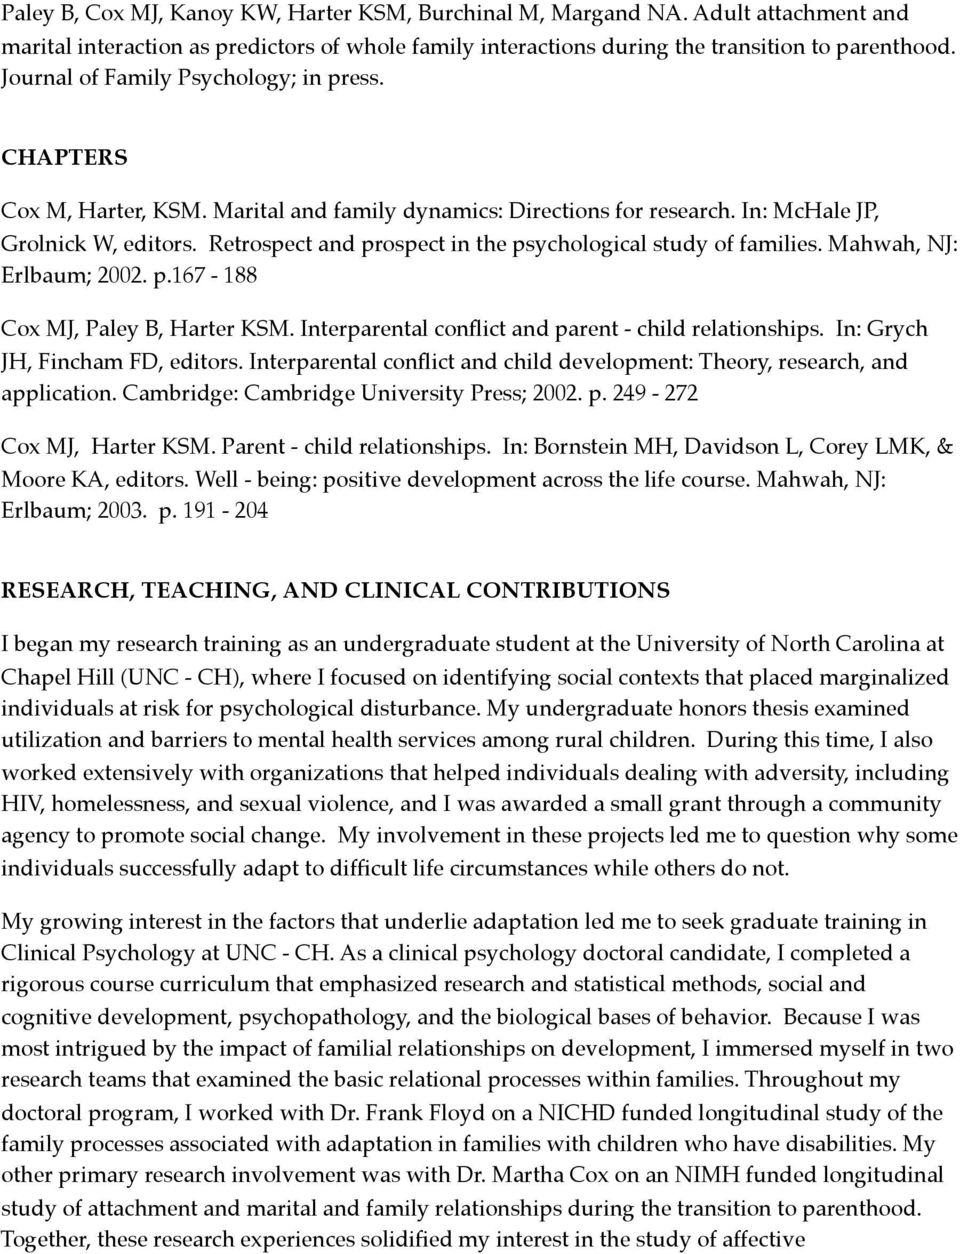 Retrospect and prospect in the psychological study of families. Mahwah, NJ: Erlbaum; 2002. p.167-188 Cox MJ, Paley B, Harter KSM. Interparental conflict and parent - child relationships.